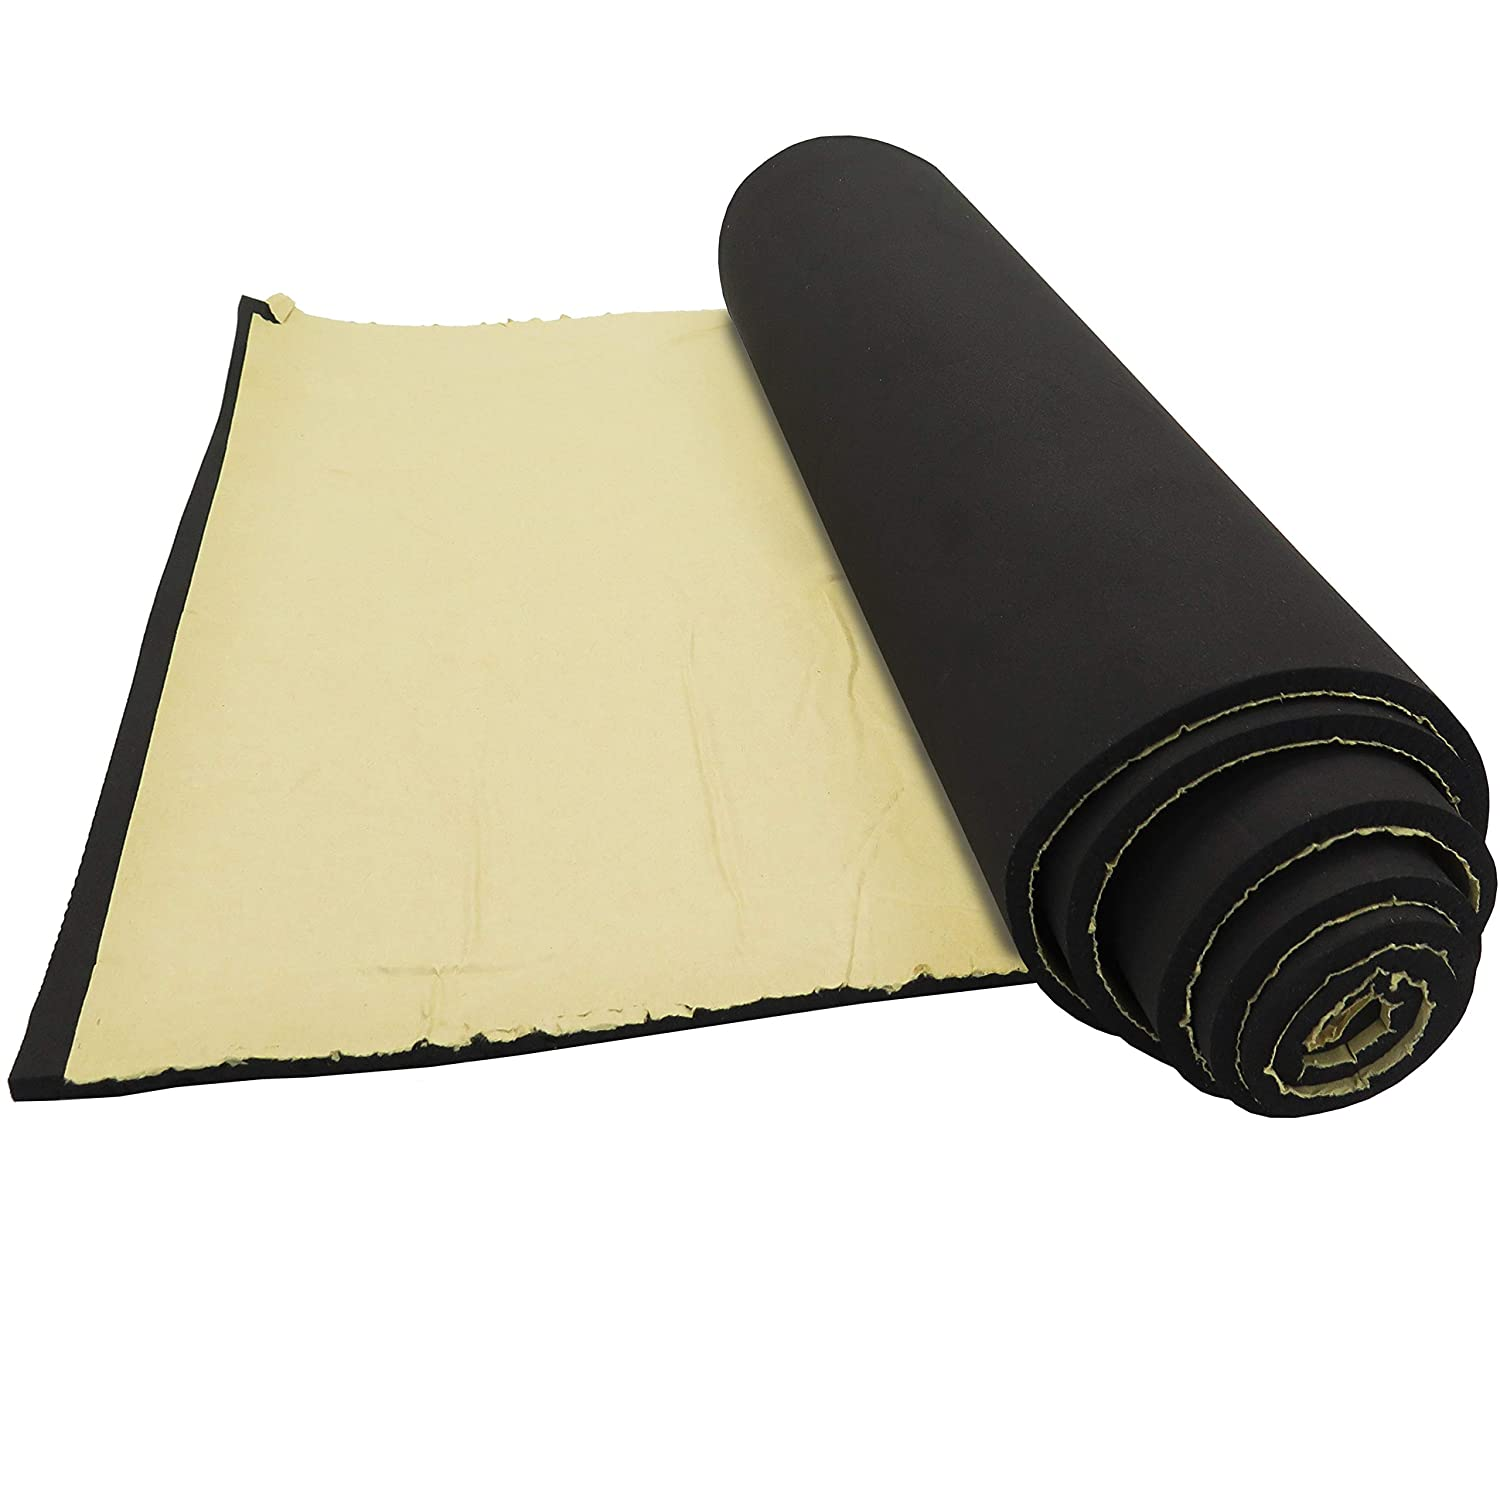 Neoprene Sponge Foam Rubber Roll with Adhesive 15in x 60in x 1 4in Thick for DIY Projects